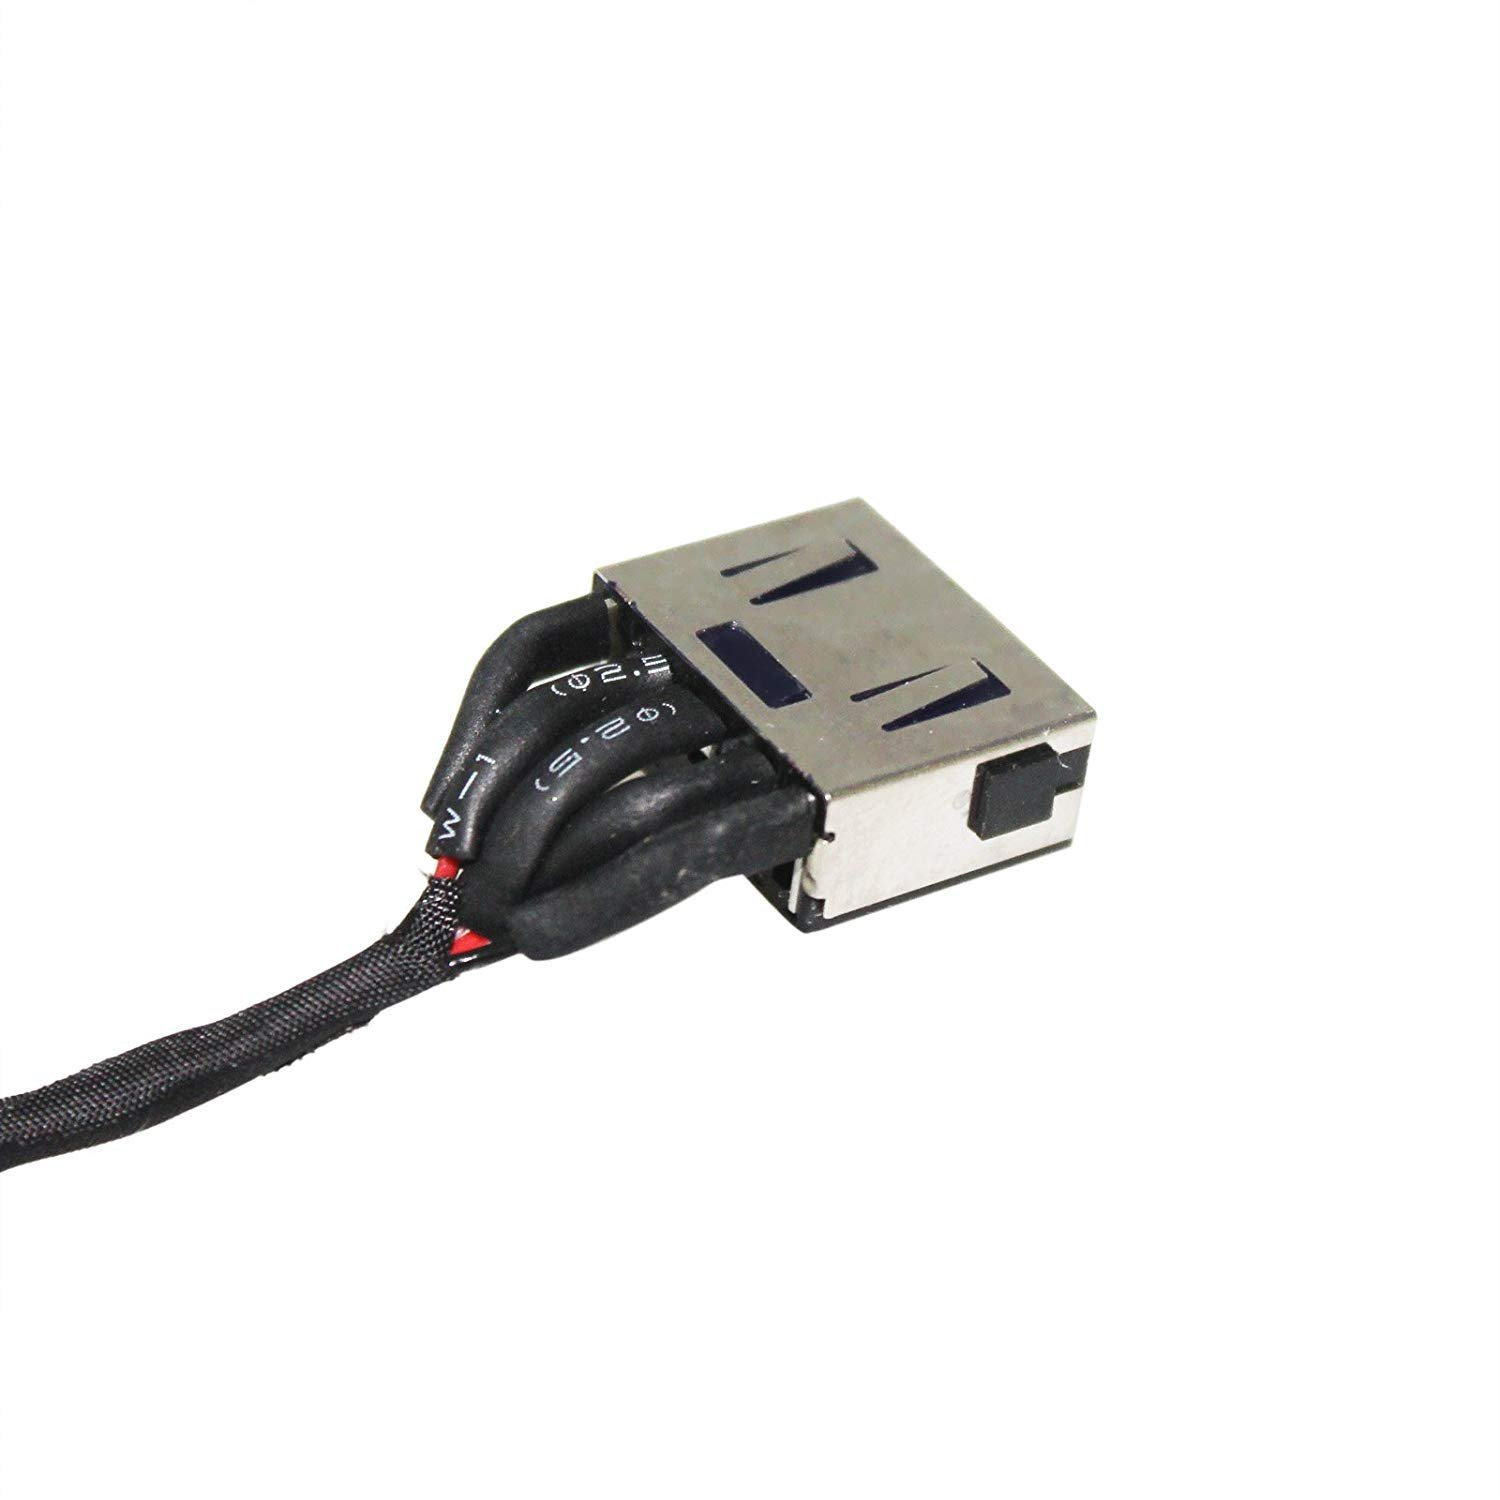 Gintai DC AC Power Jack Harness Socket Plug In Cable For Lenovo Ideapad G50 Series G50-30 G50-40 G50-45 G50-50 DC30100LD00 DC30100LG00 Z50 Z50-70 Z50-75 Z50-80